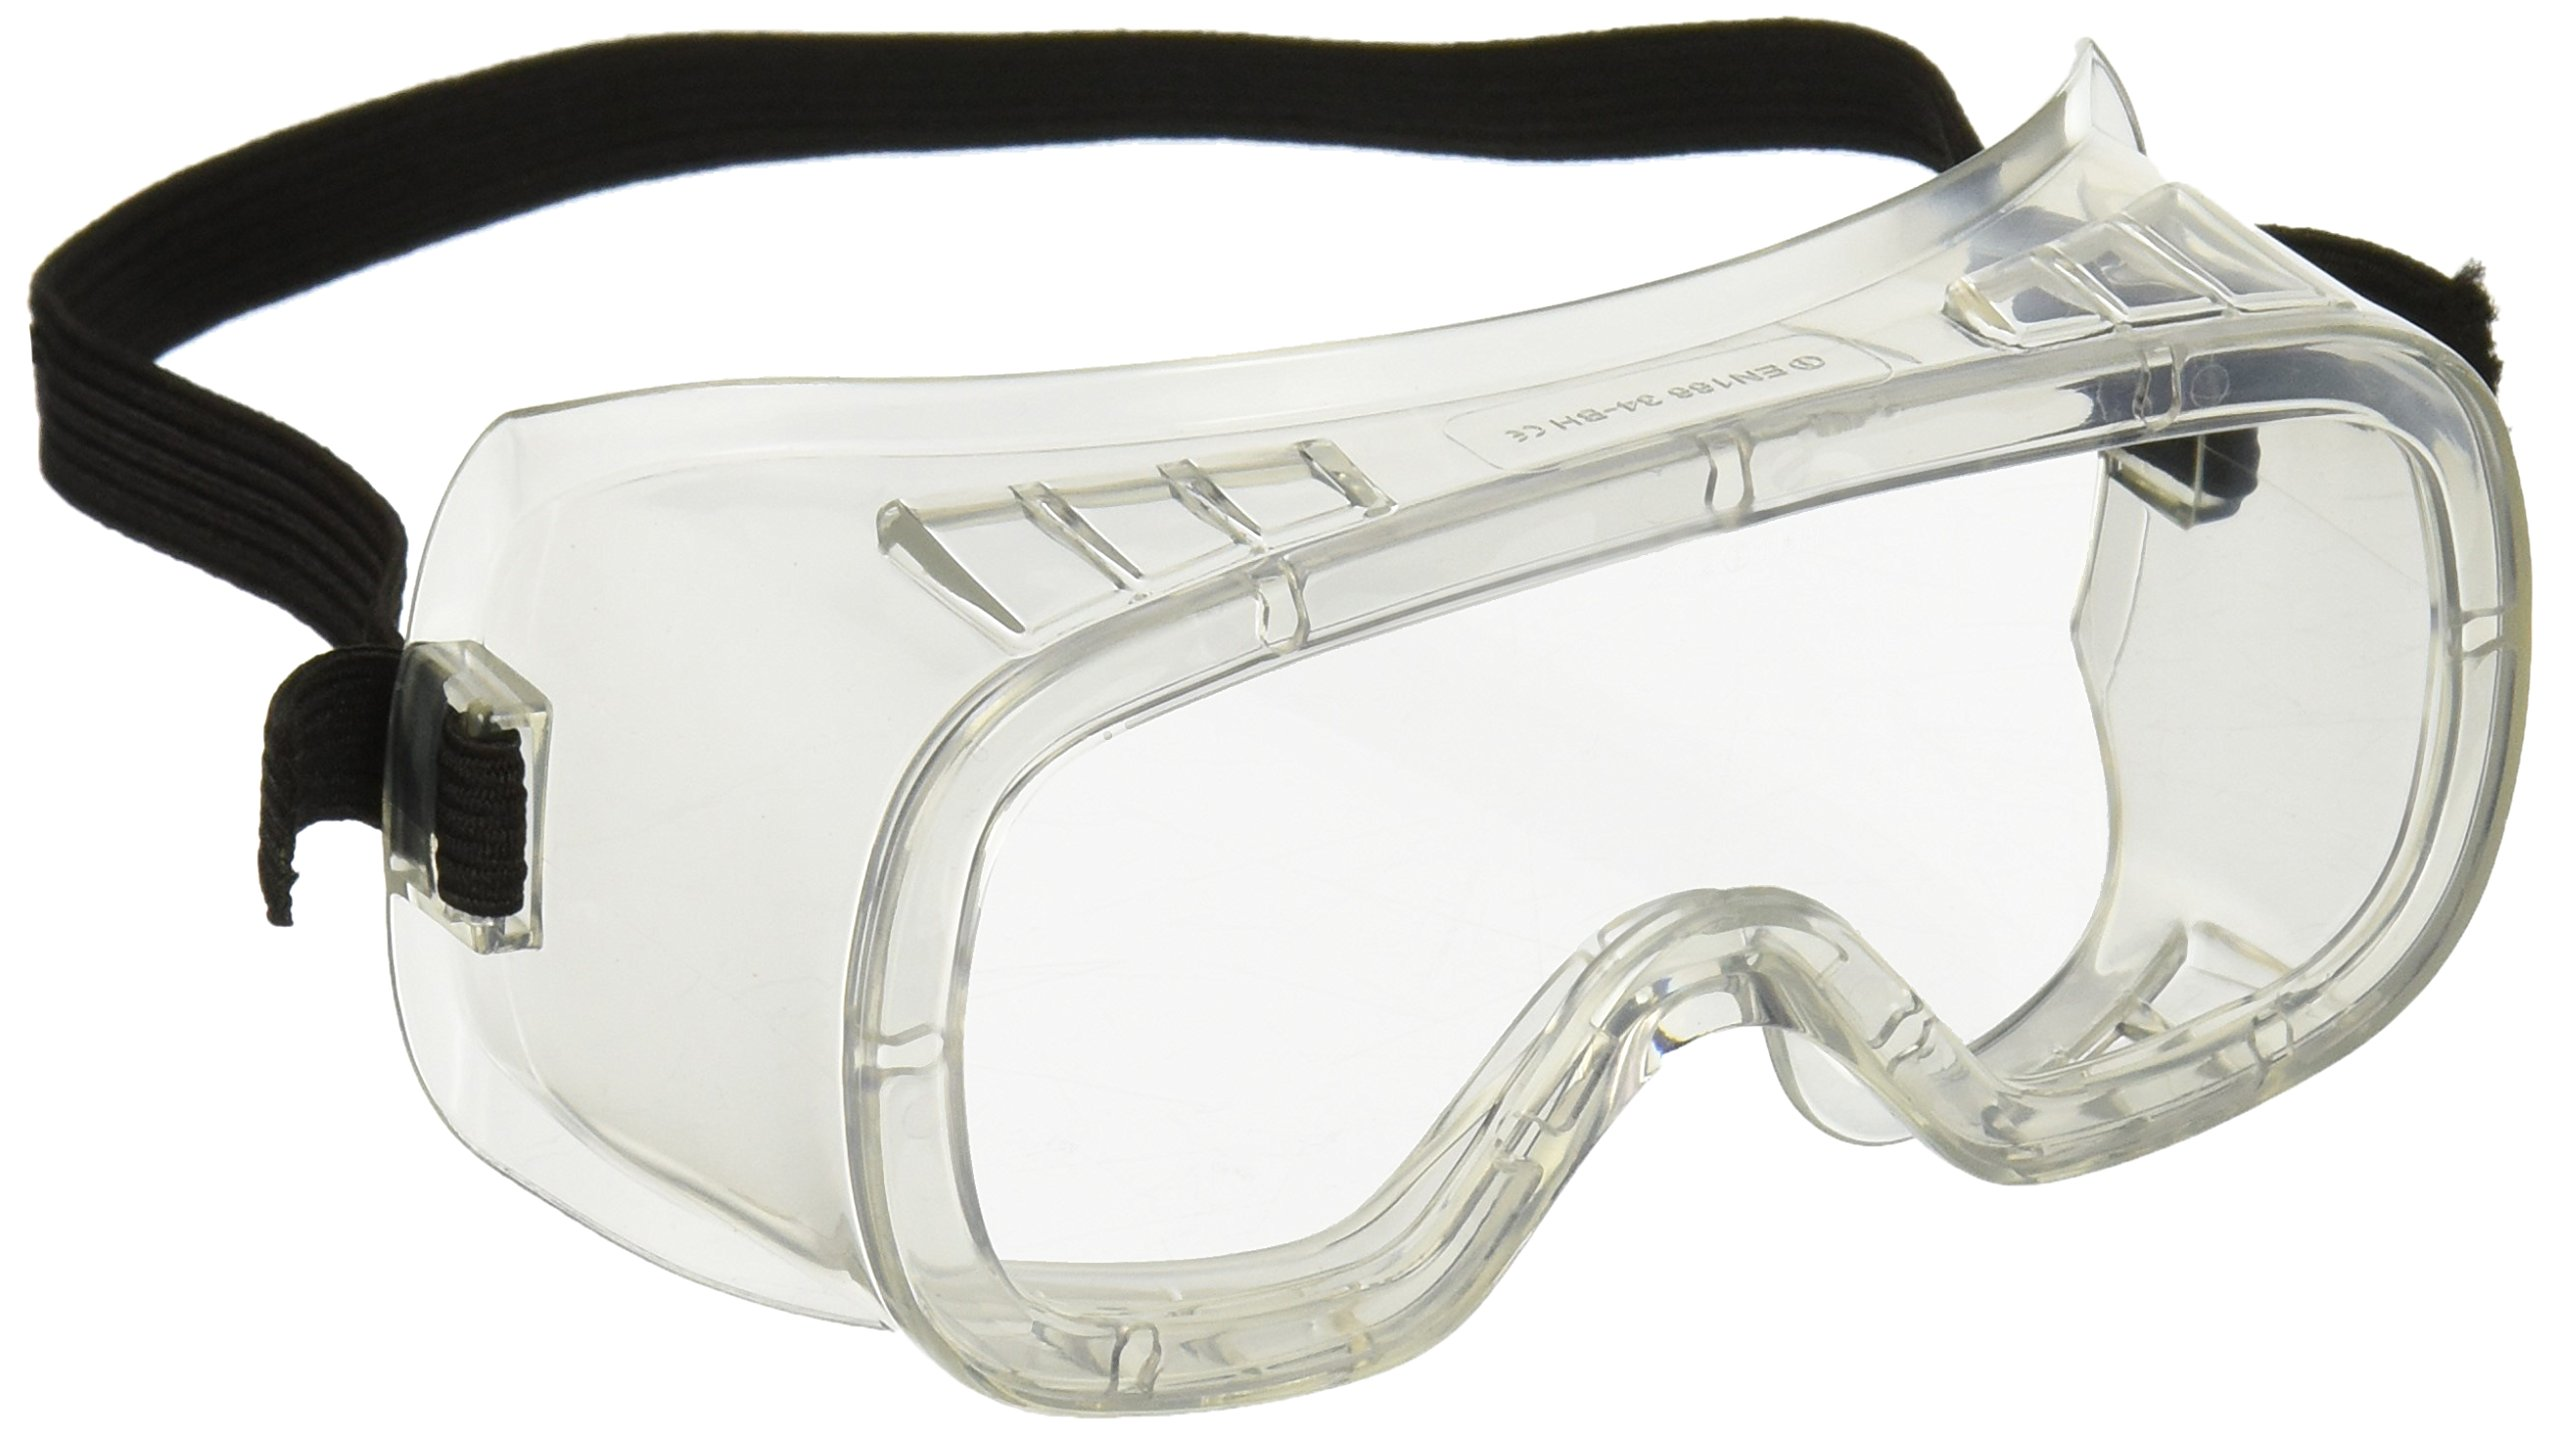 Premium Quality Children's Safety Goggles